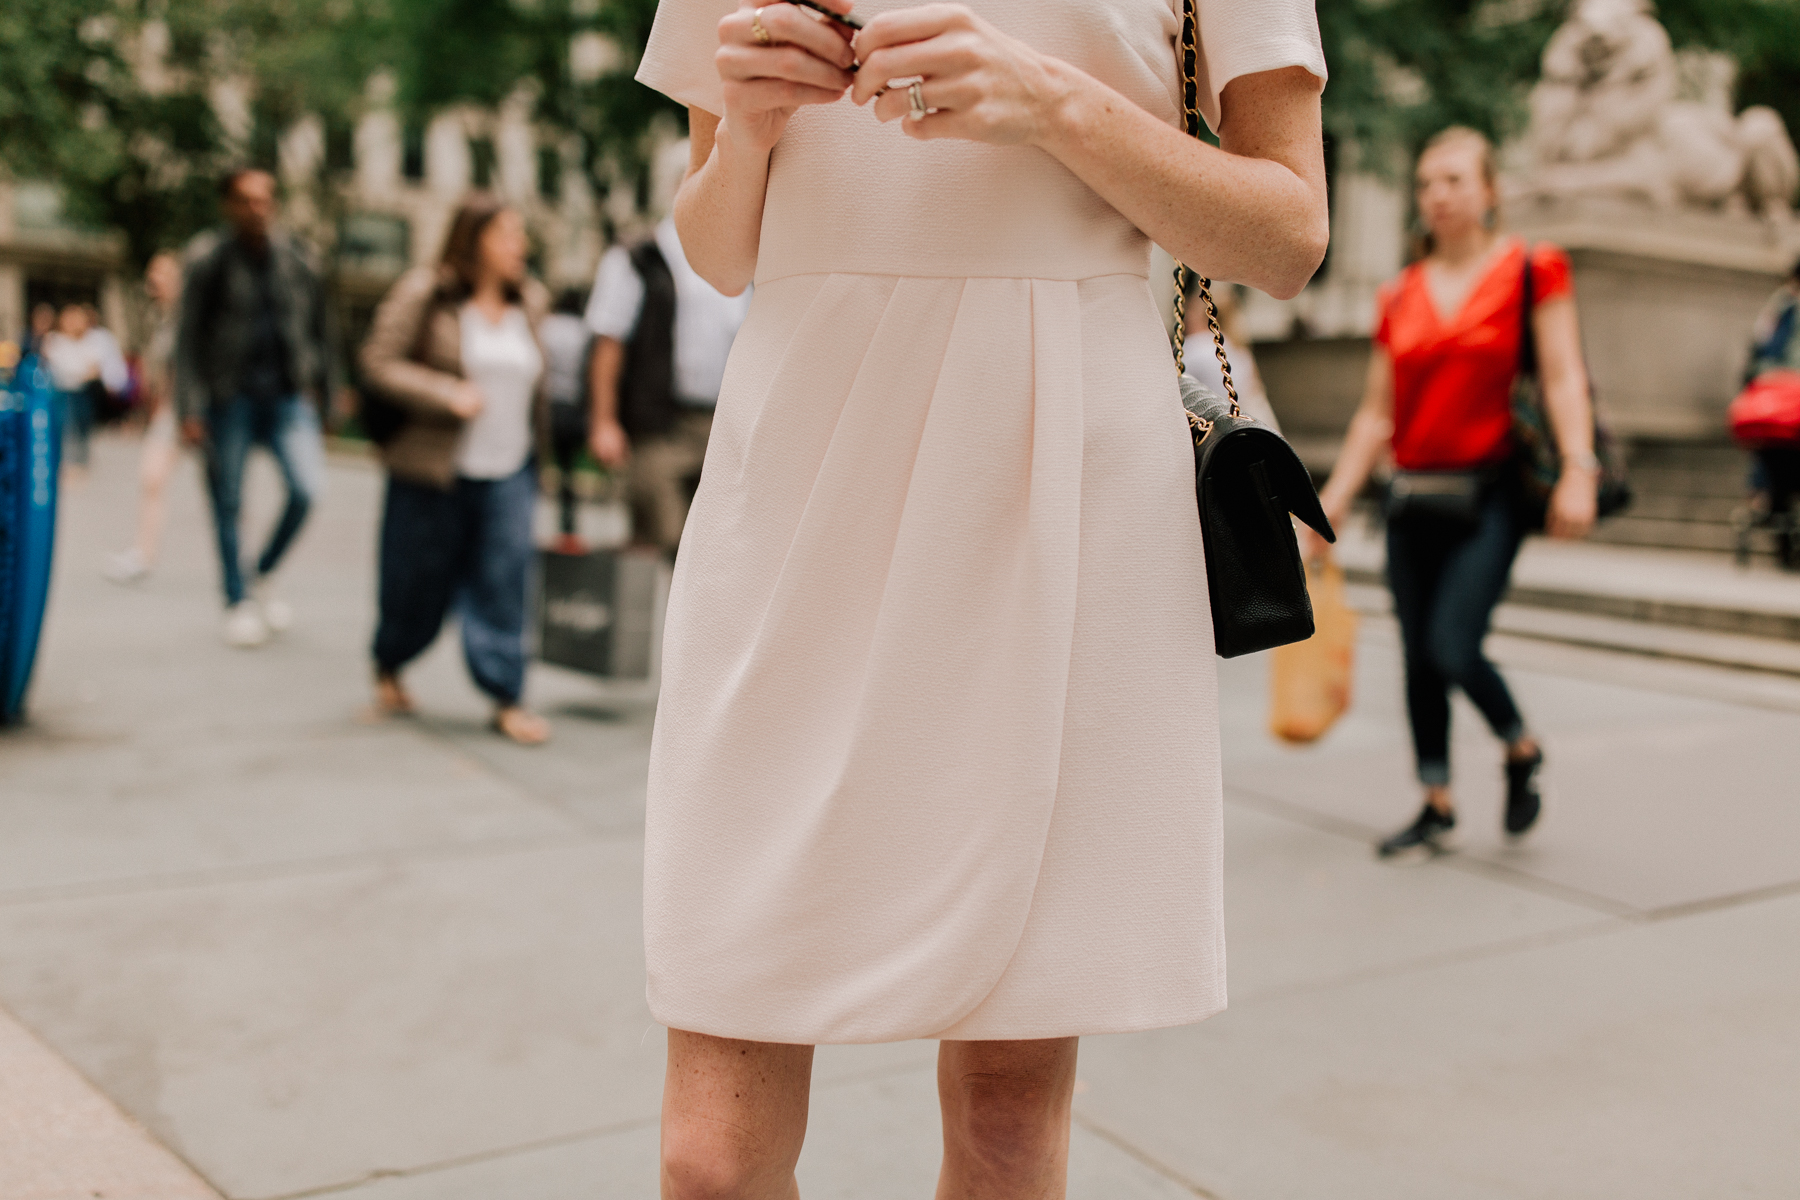 Club Monaco Lynndalyn Dress (On sale!)